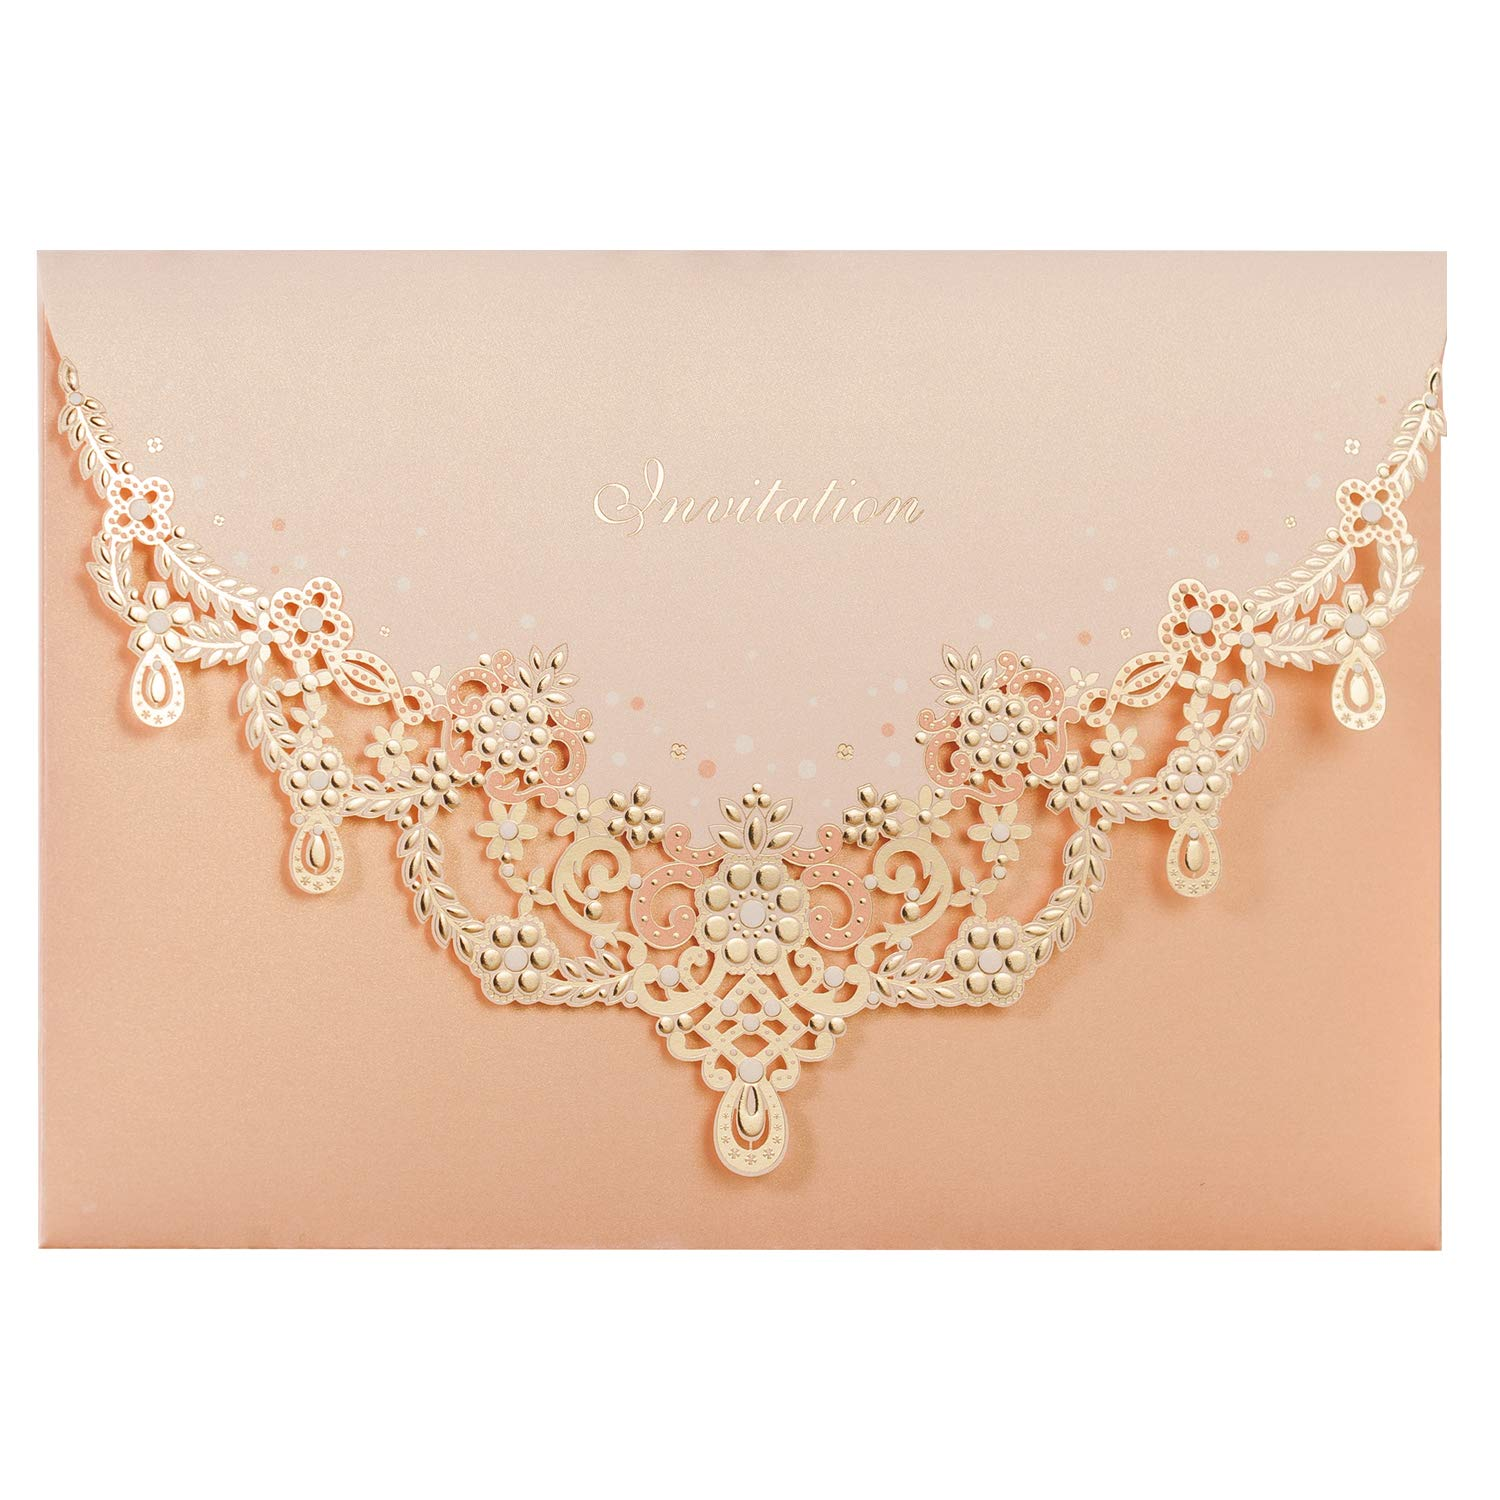 WISHMADE 50pcs Blush Laser Cut Flora Lace Wedding Invitation Cards with Blank Inner Sheets and Envelopes for Wedding Invite Engagement (Pack of 50pcs)